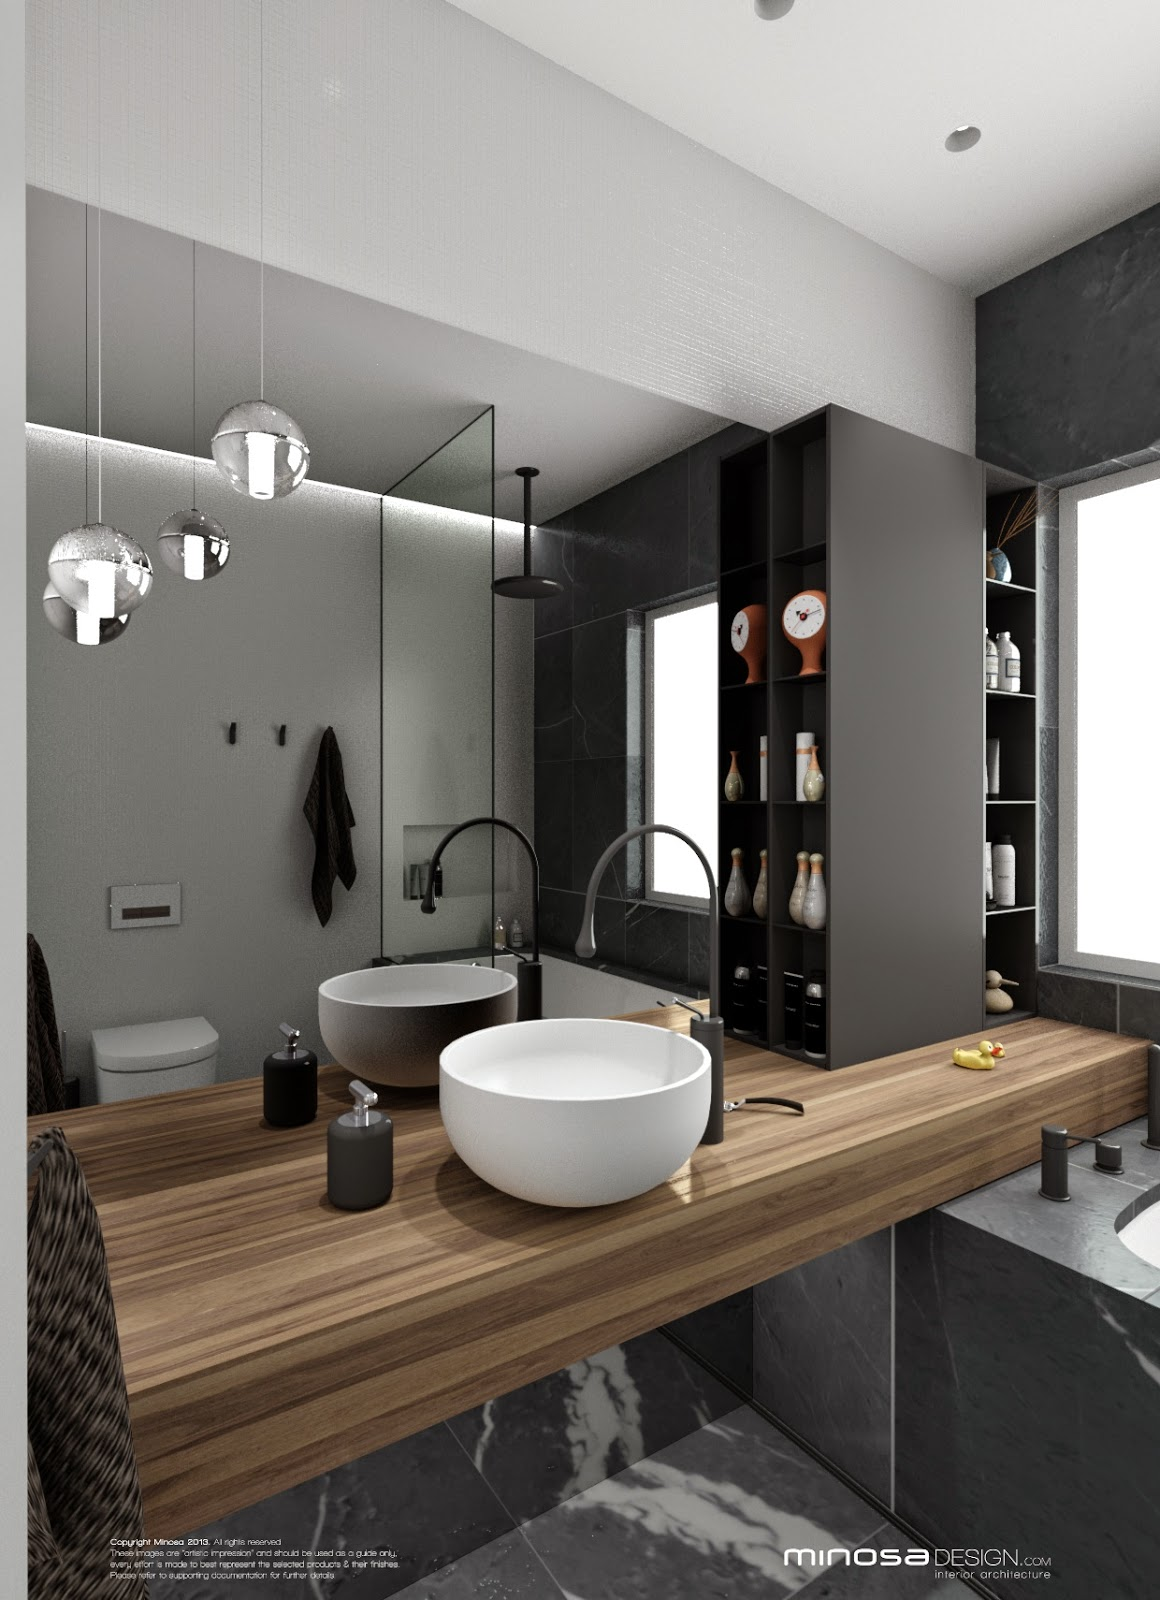 Minosa bathroom design small space feels large for Small bathroom design this site